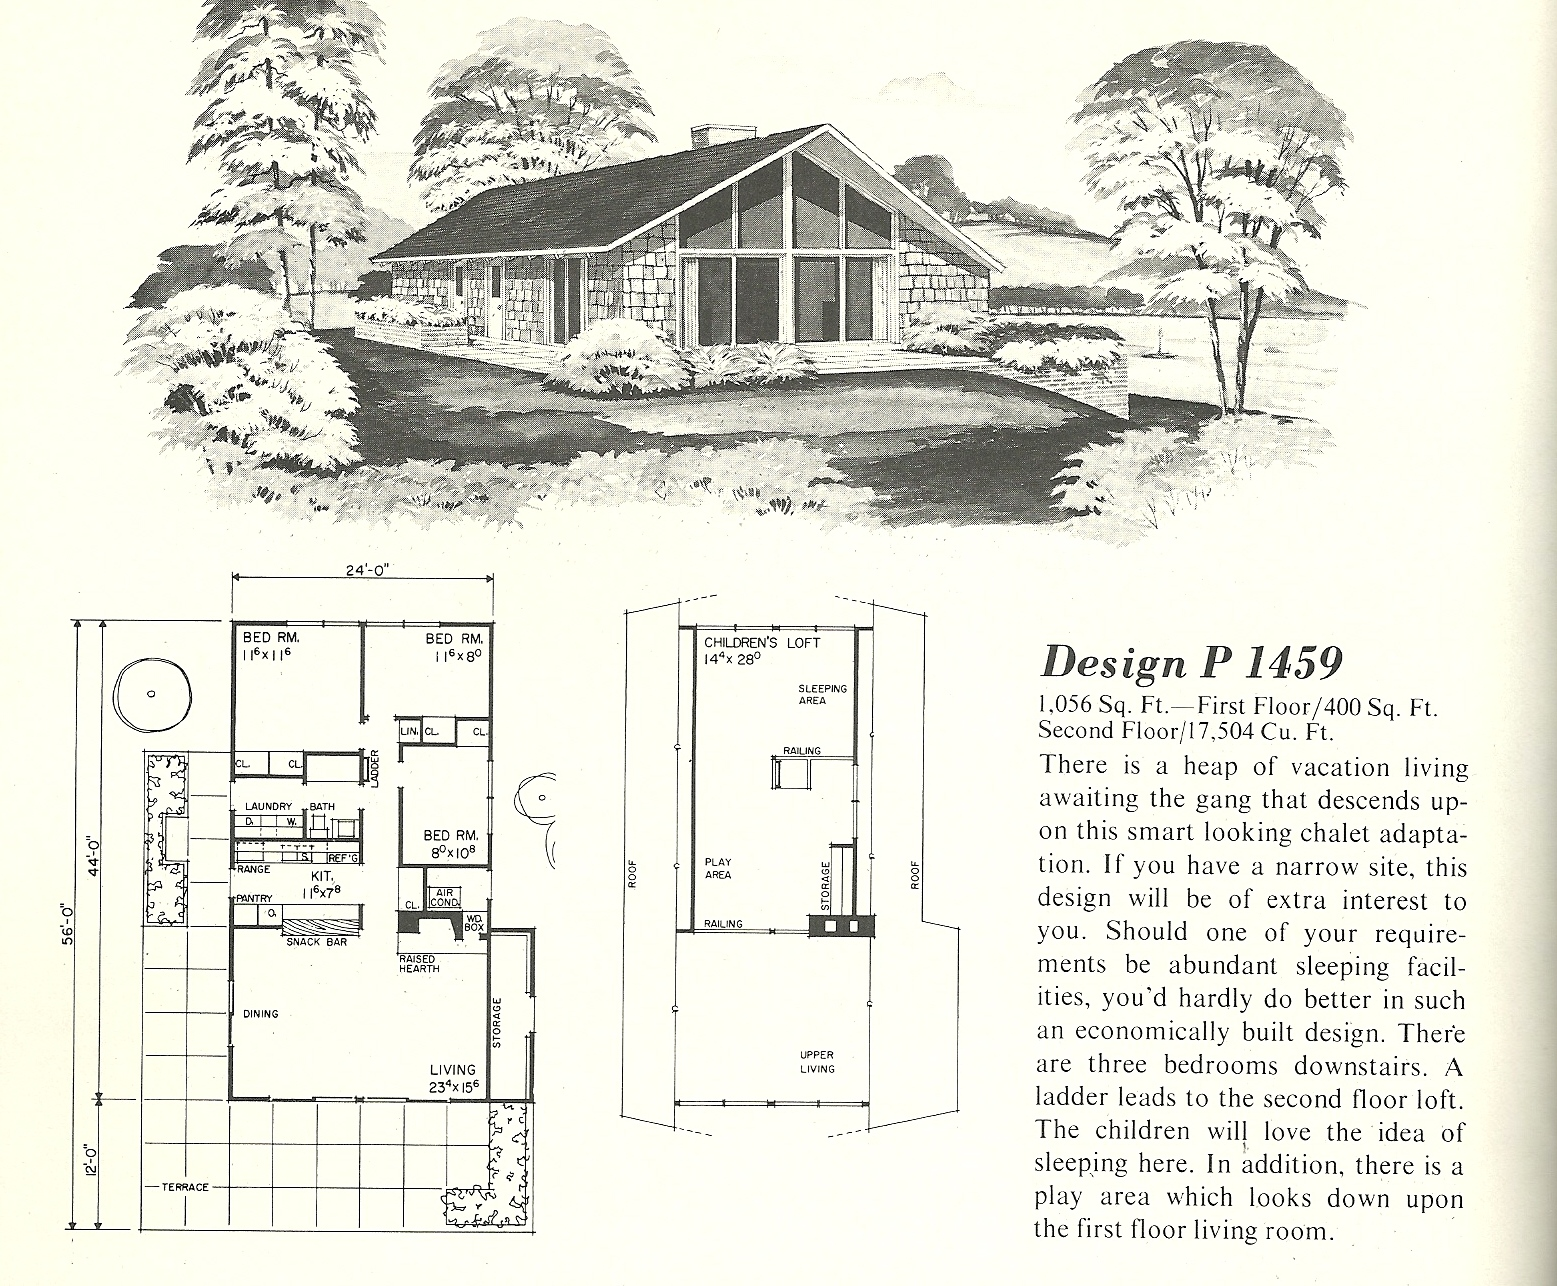 vintage house plans 1459 antique alter ego